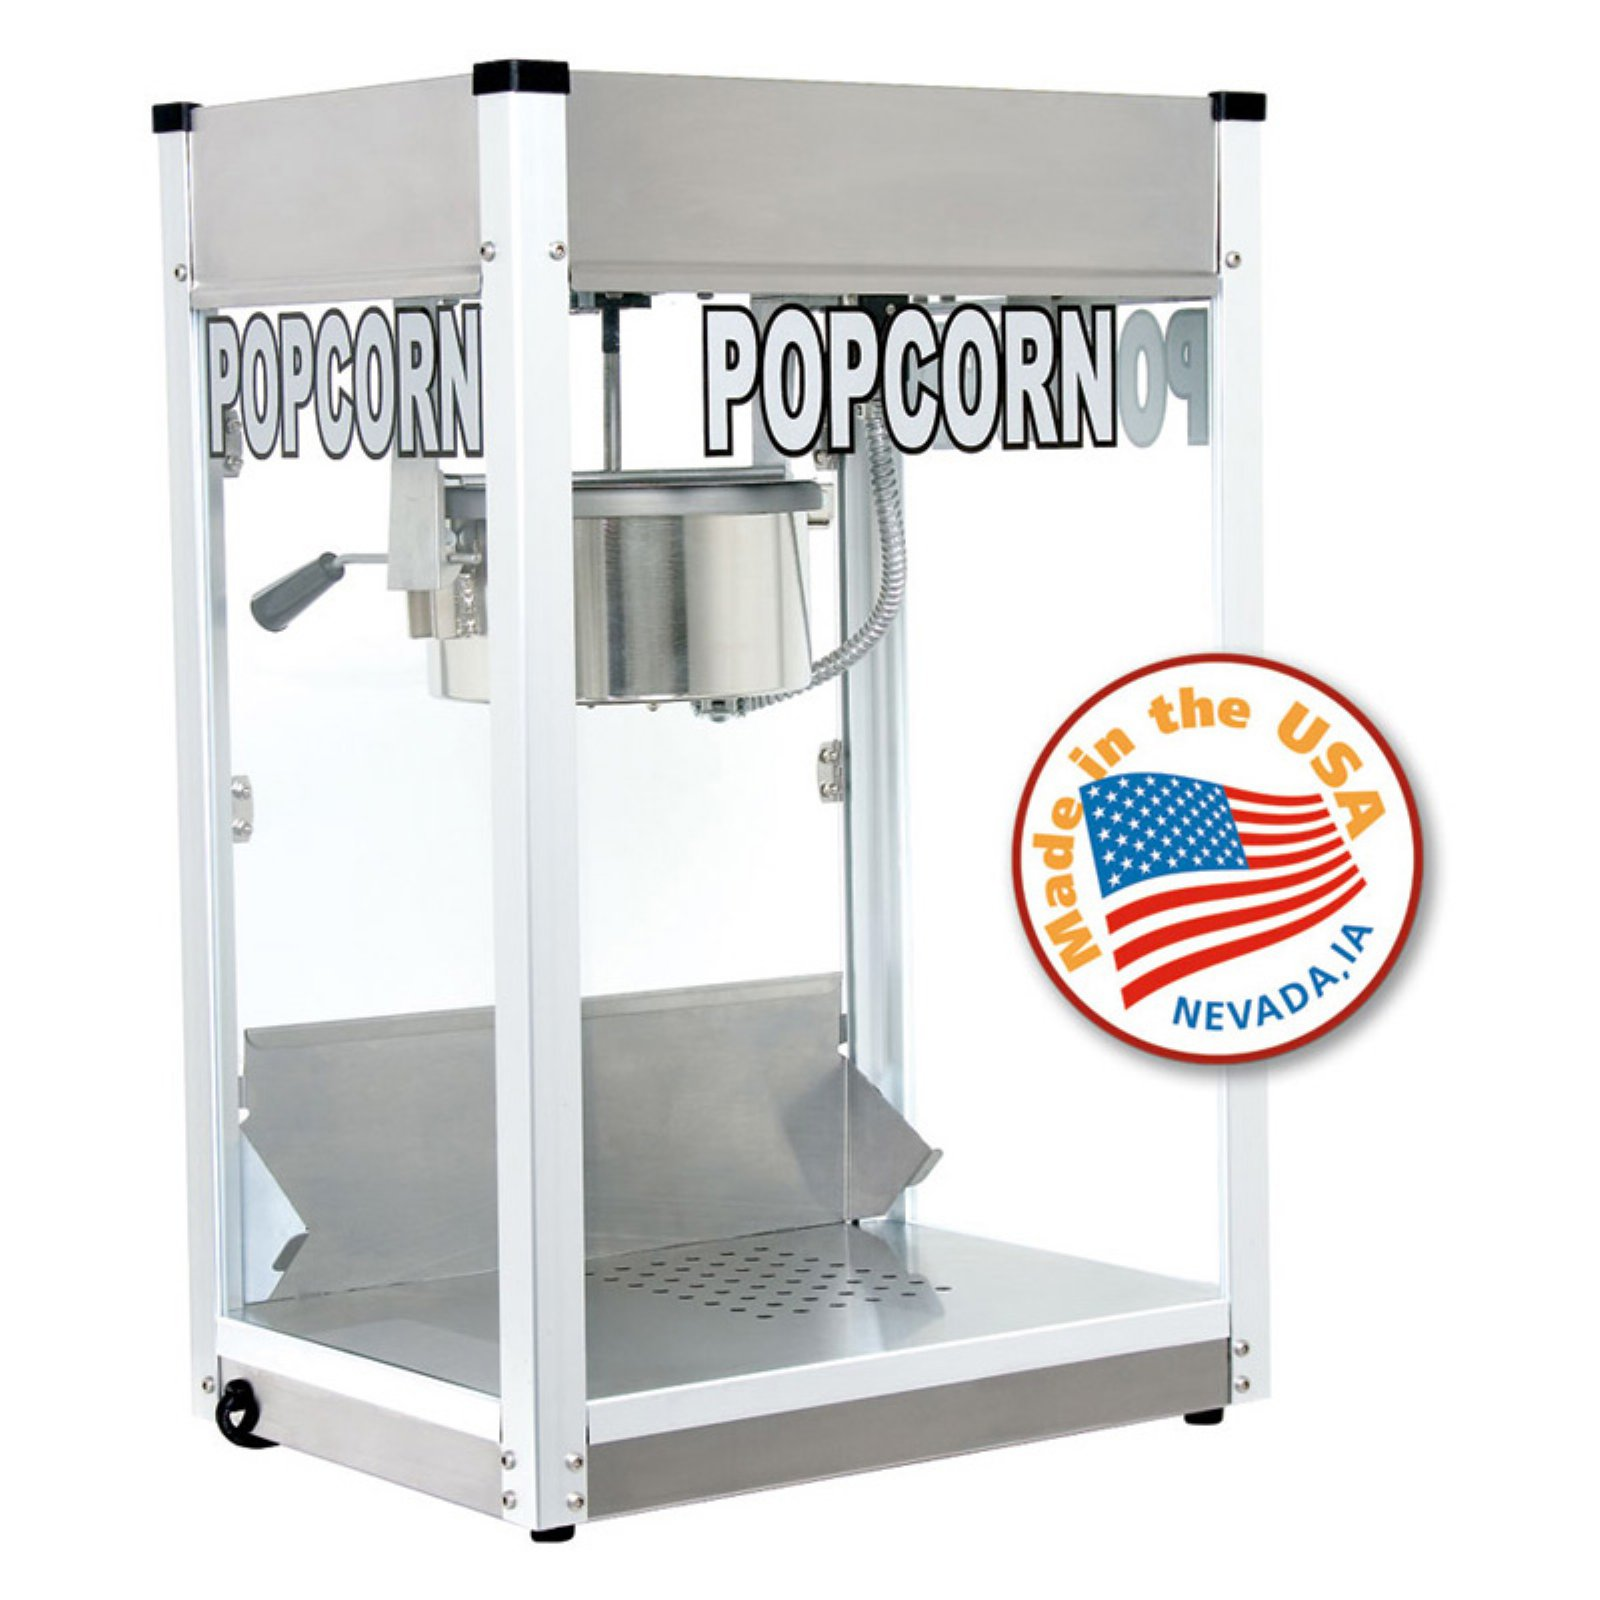 Paragon Professional Series 8 oz. Popcorn Machine